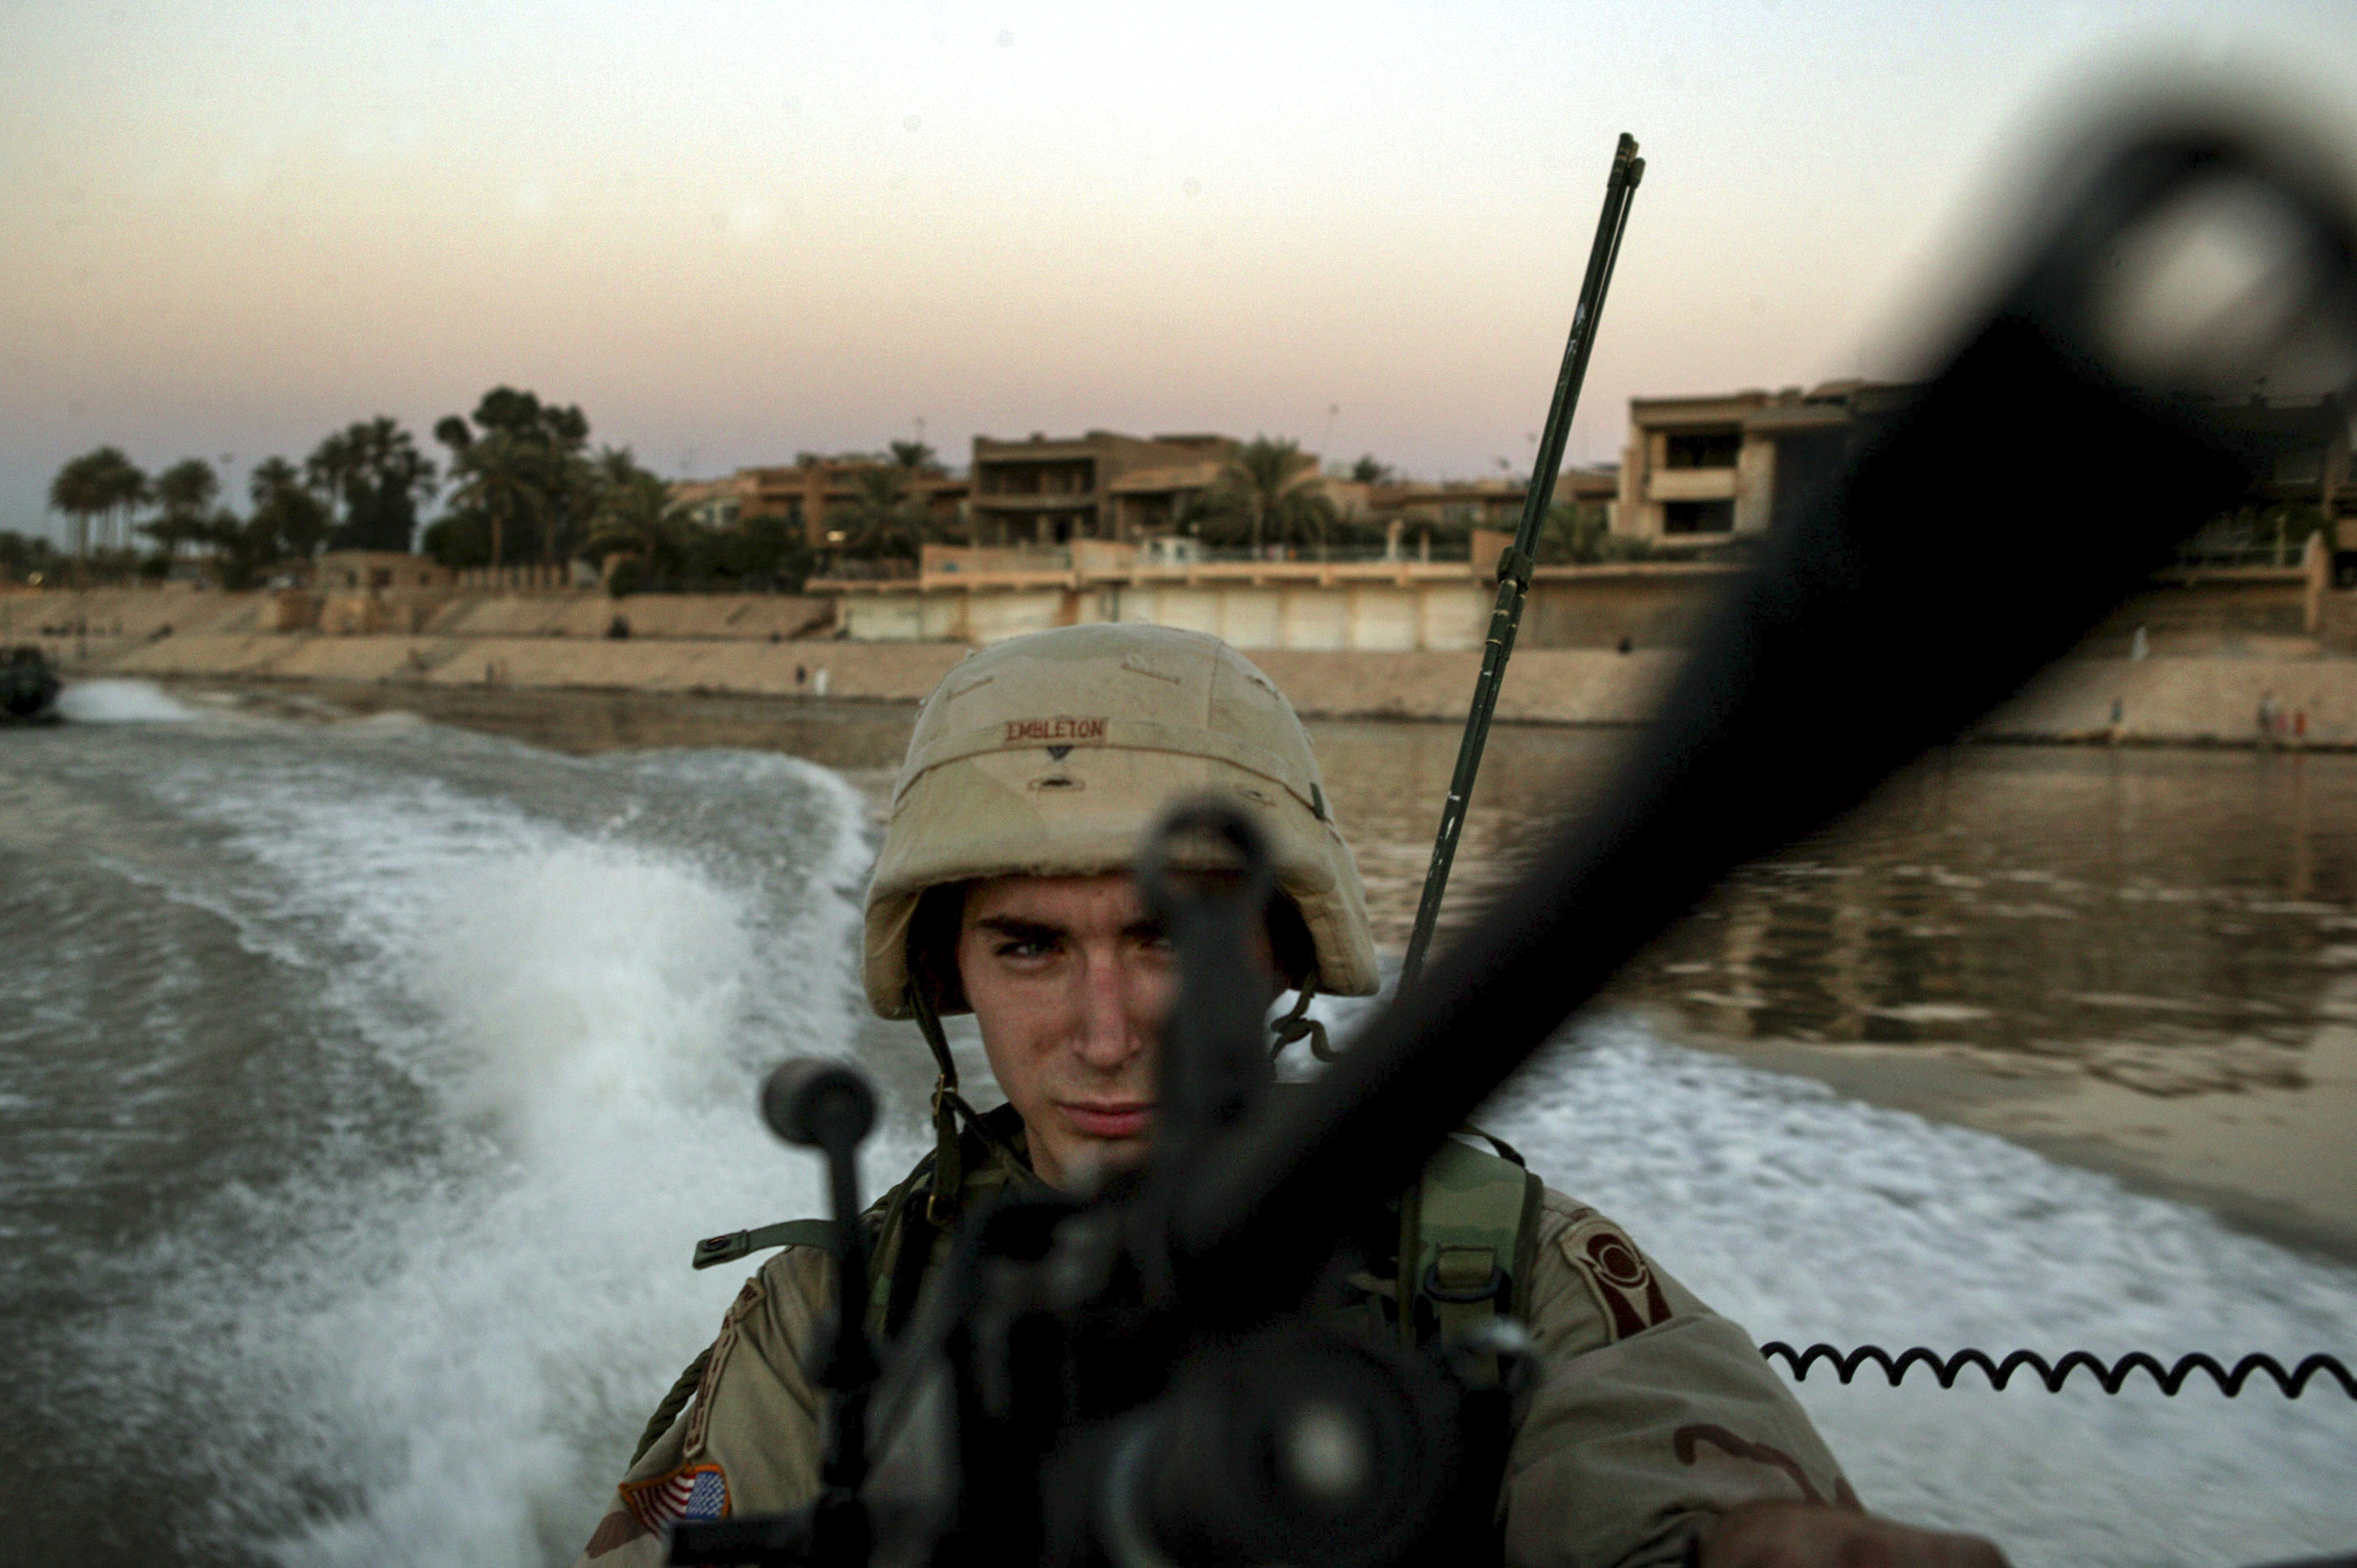 Alpha Company's David Embelton with the 3rd Battalion 124 Infantry keeps an eye on the waters during a boat patrol of the Tigris river.